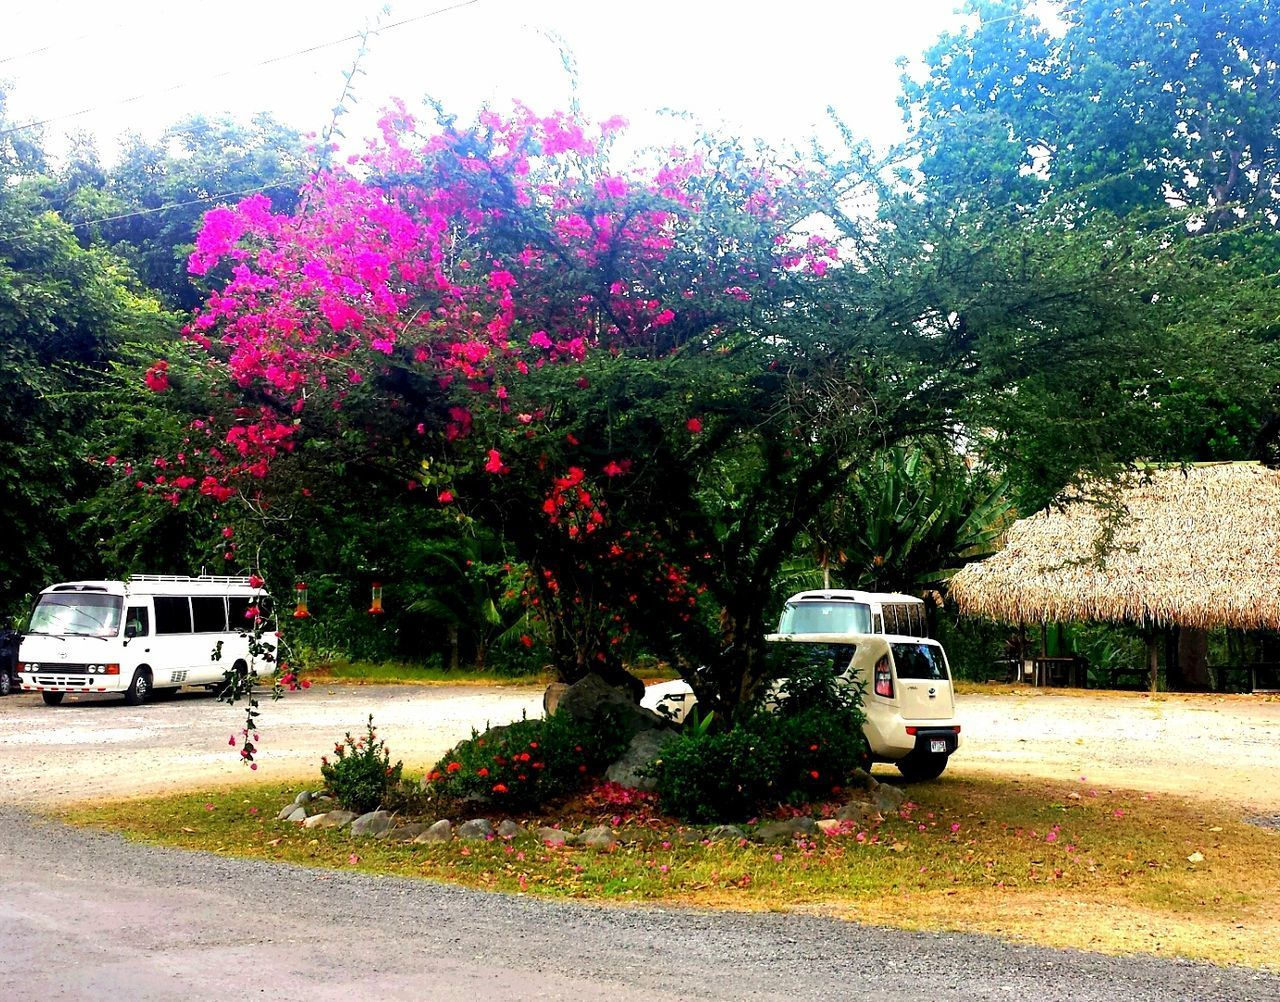 land vehicle, tree, transportation, mode of transport, car, road, street, day, flower, outdoors, no people, nature